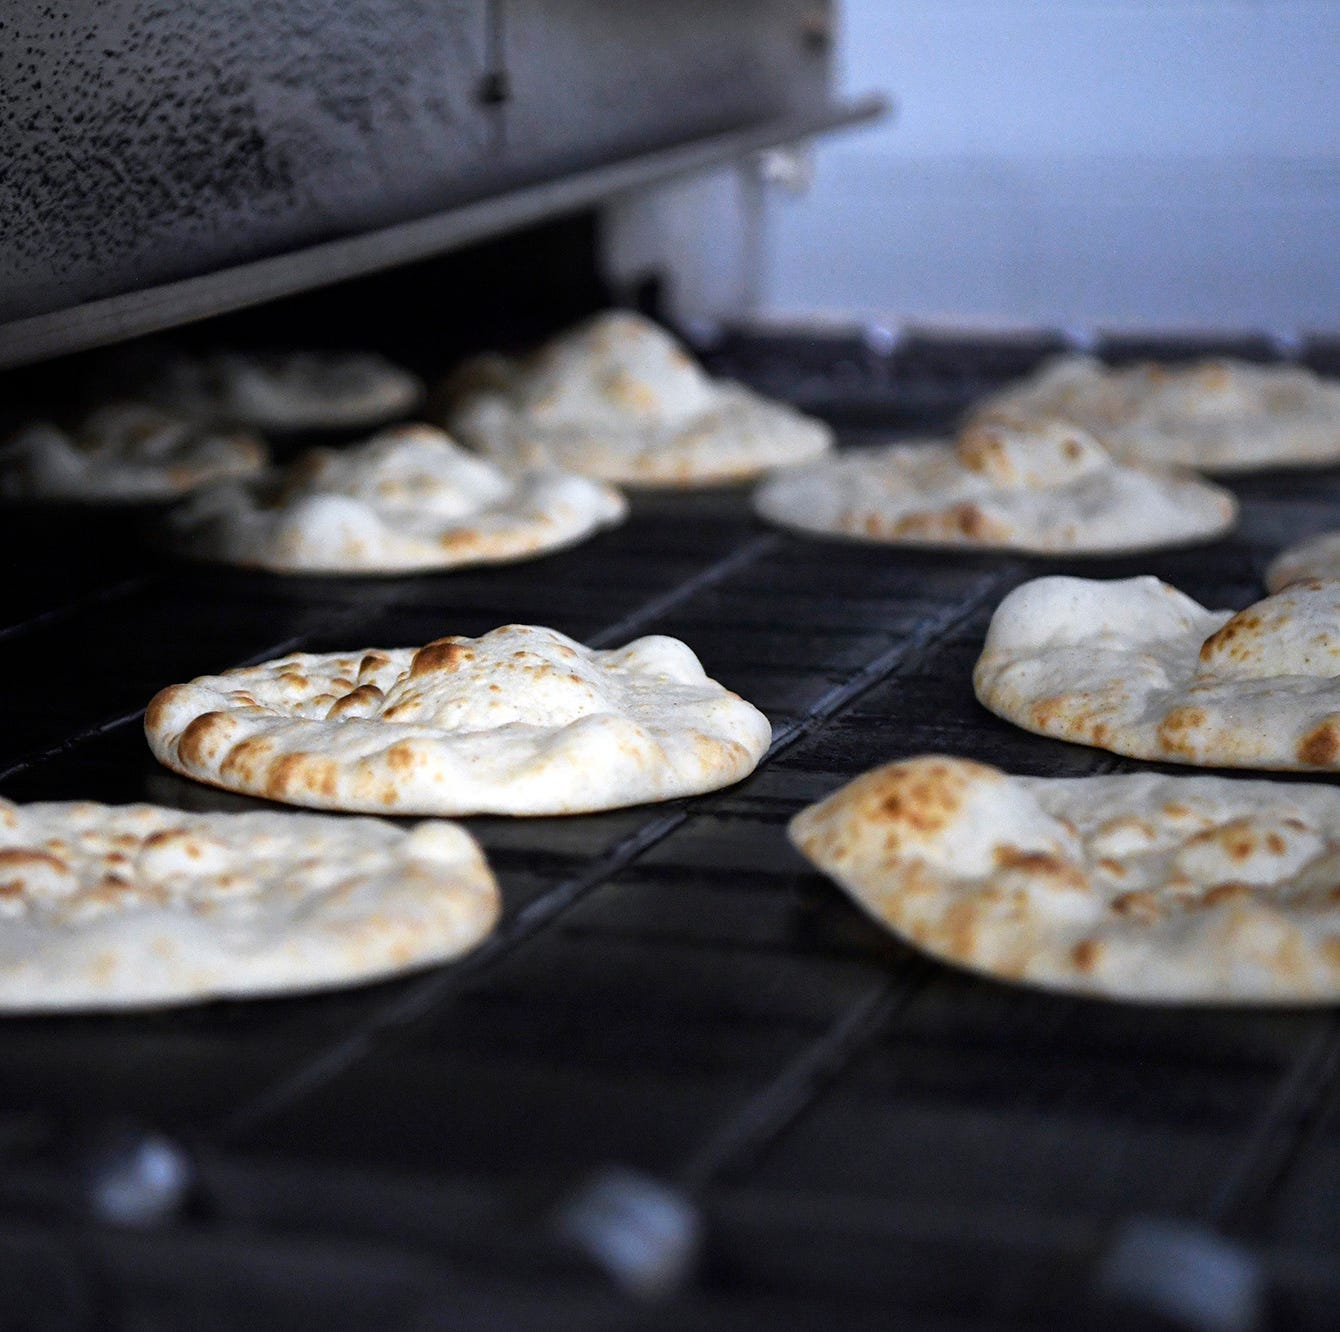 Baked in Paterson, eaten in Saudi Arabia. The global journey of Jersey-made pita